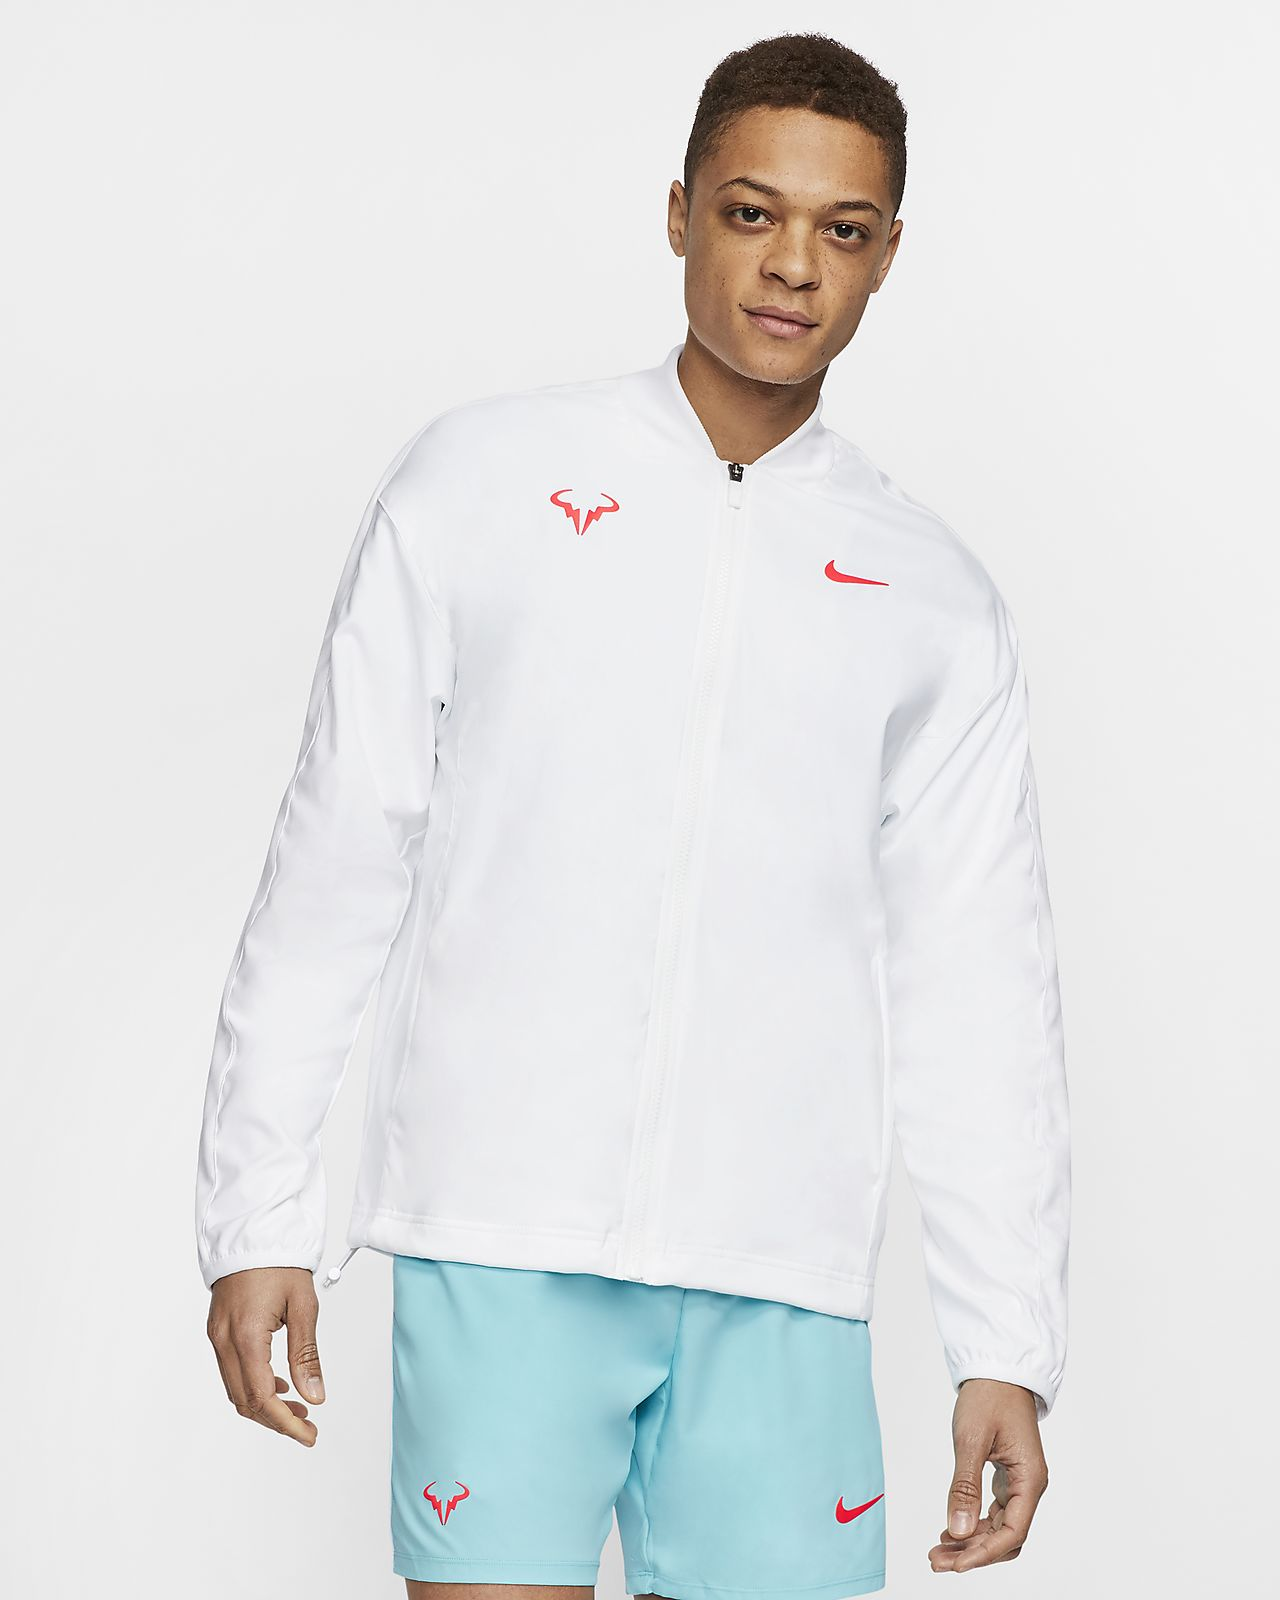 Rafa Men's Tennis Jacket